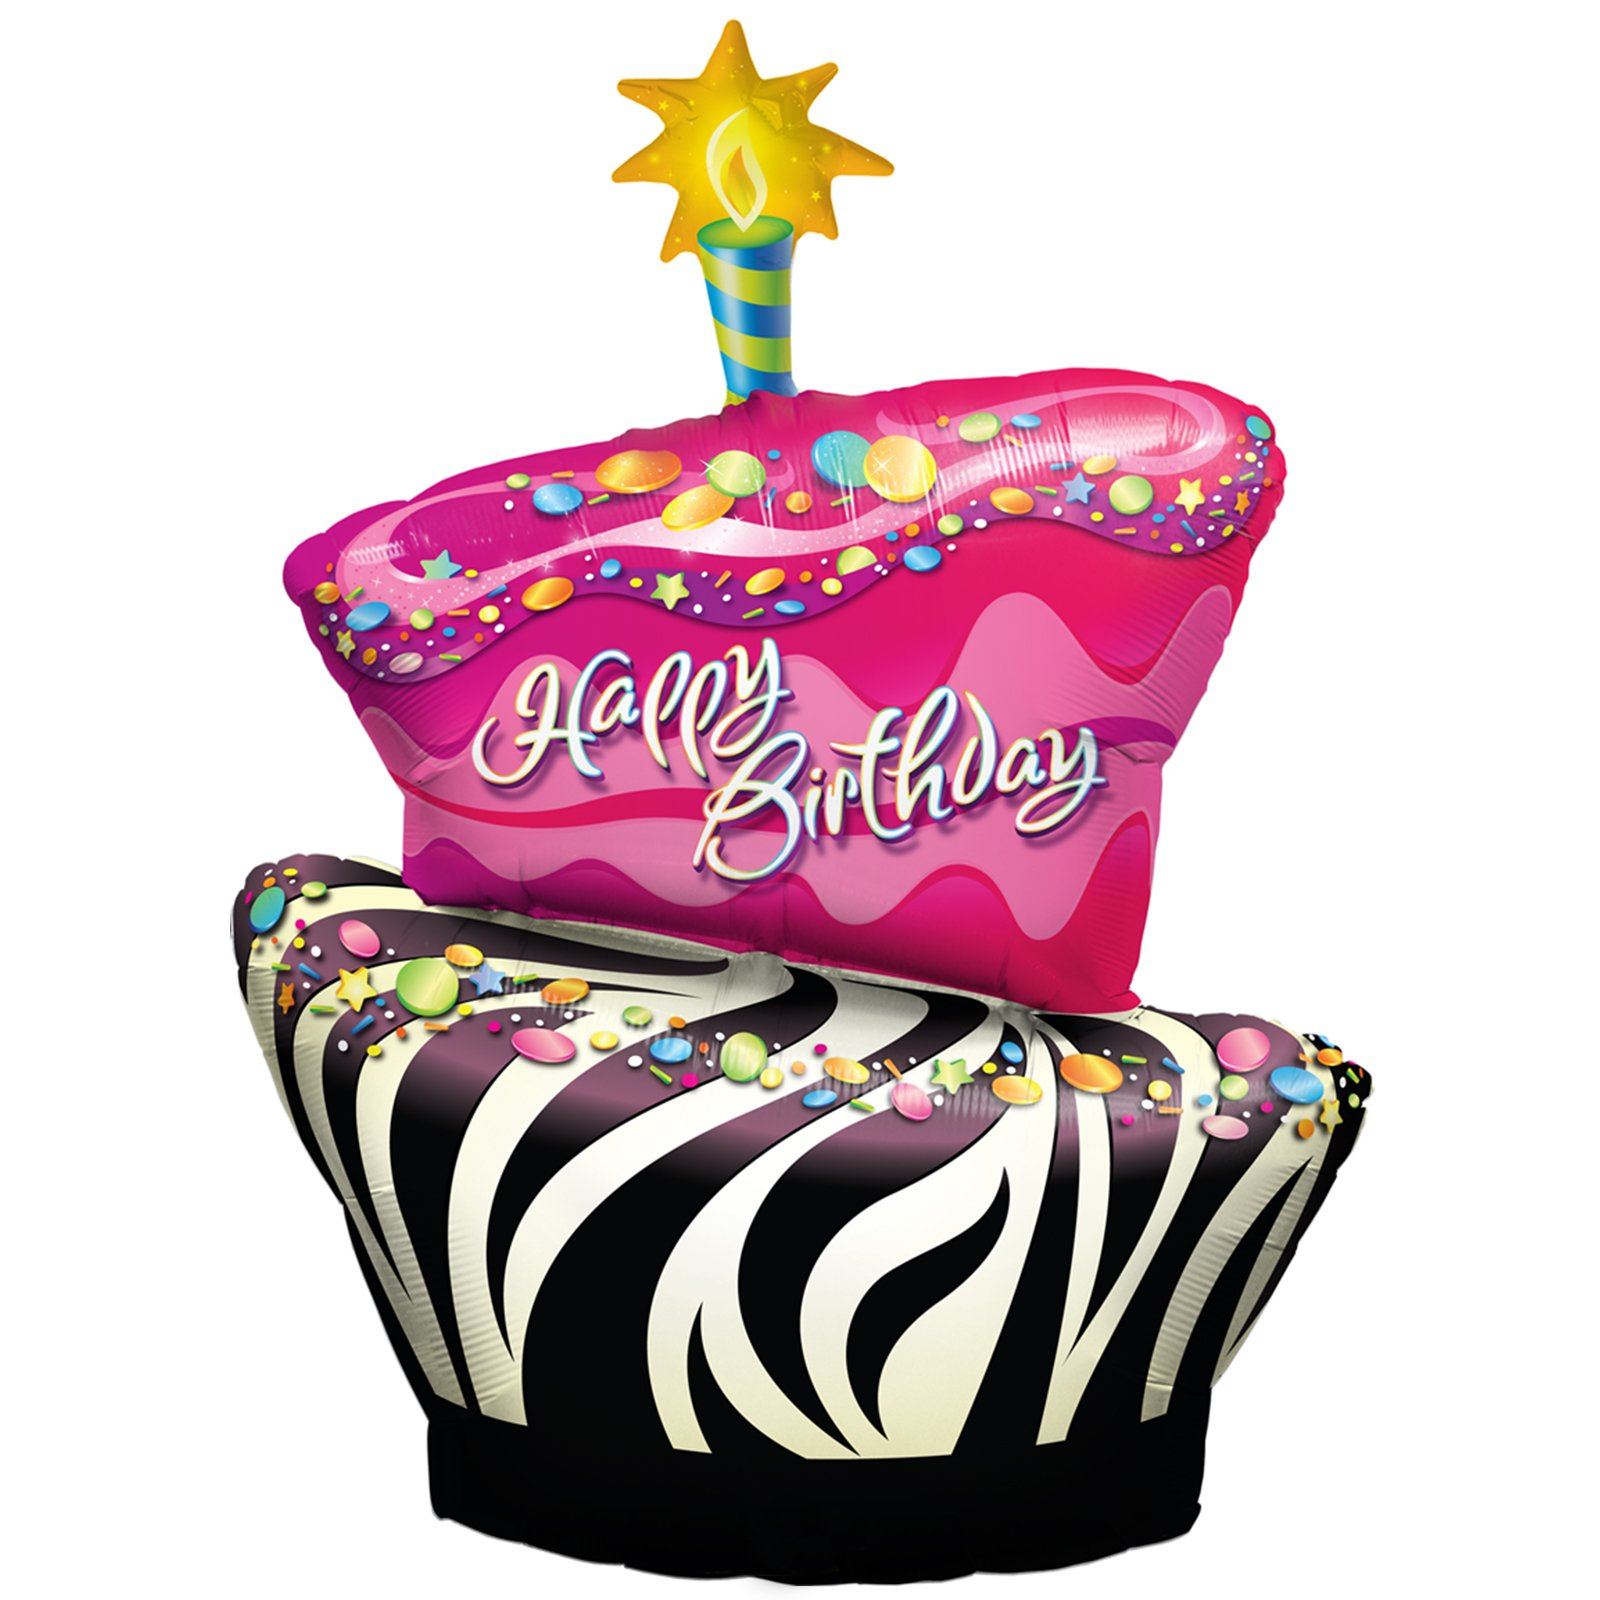 1600x1600 Amazing Cake Birthday Cake Clipart Birthday Cake Clipart Delicious